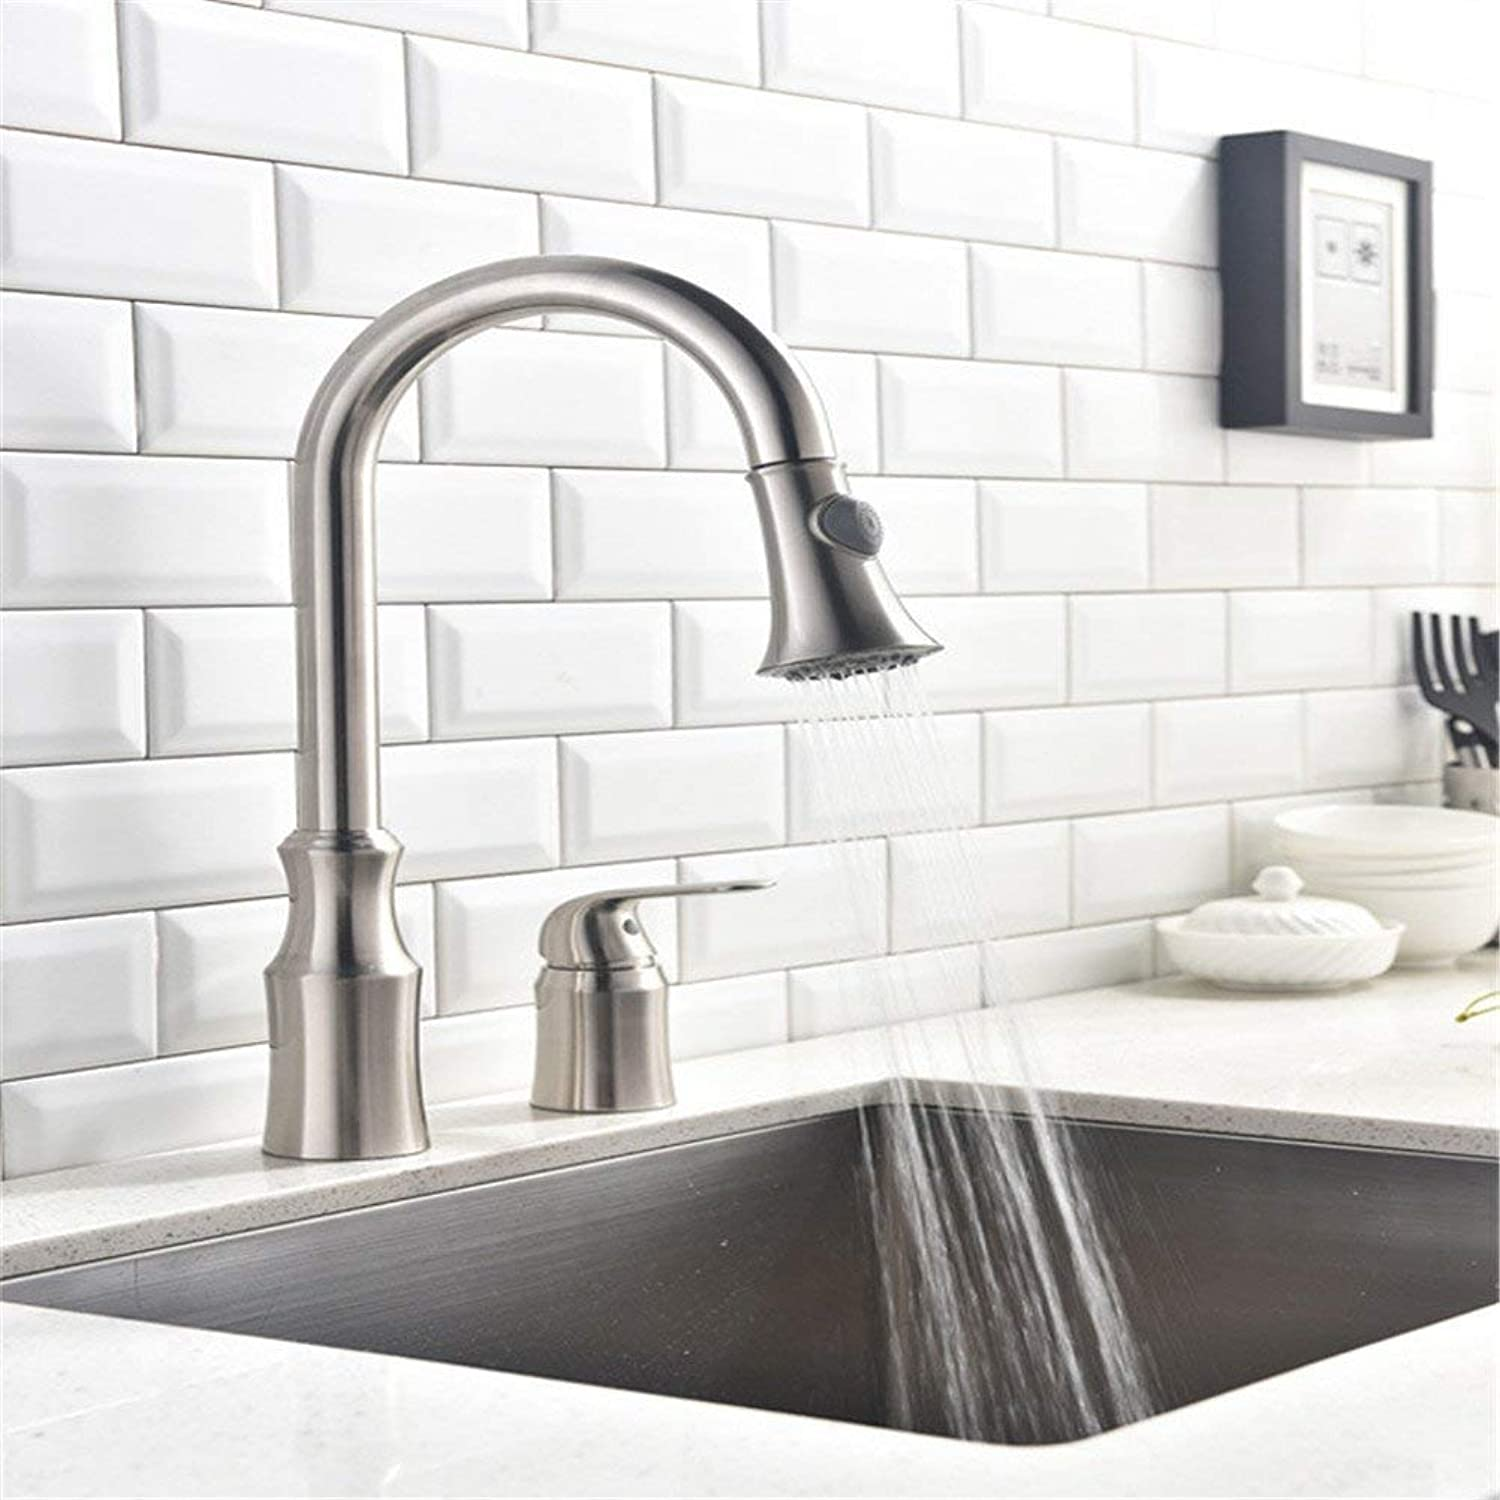 Contemporary Hot and Cold Taps Pumping Split-Type Faucet Basin Mixing Multifunctional Kitchen Faucet,White